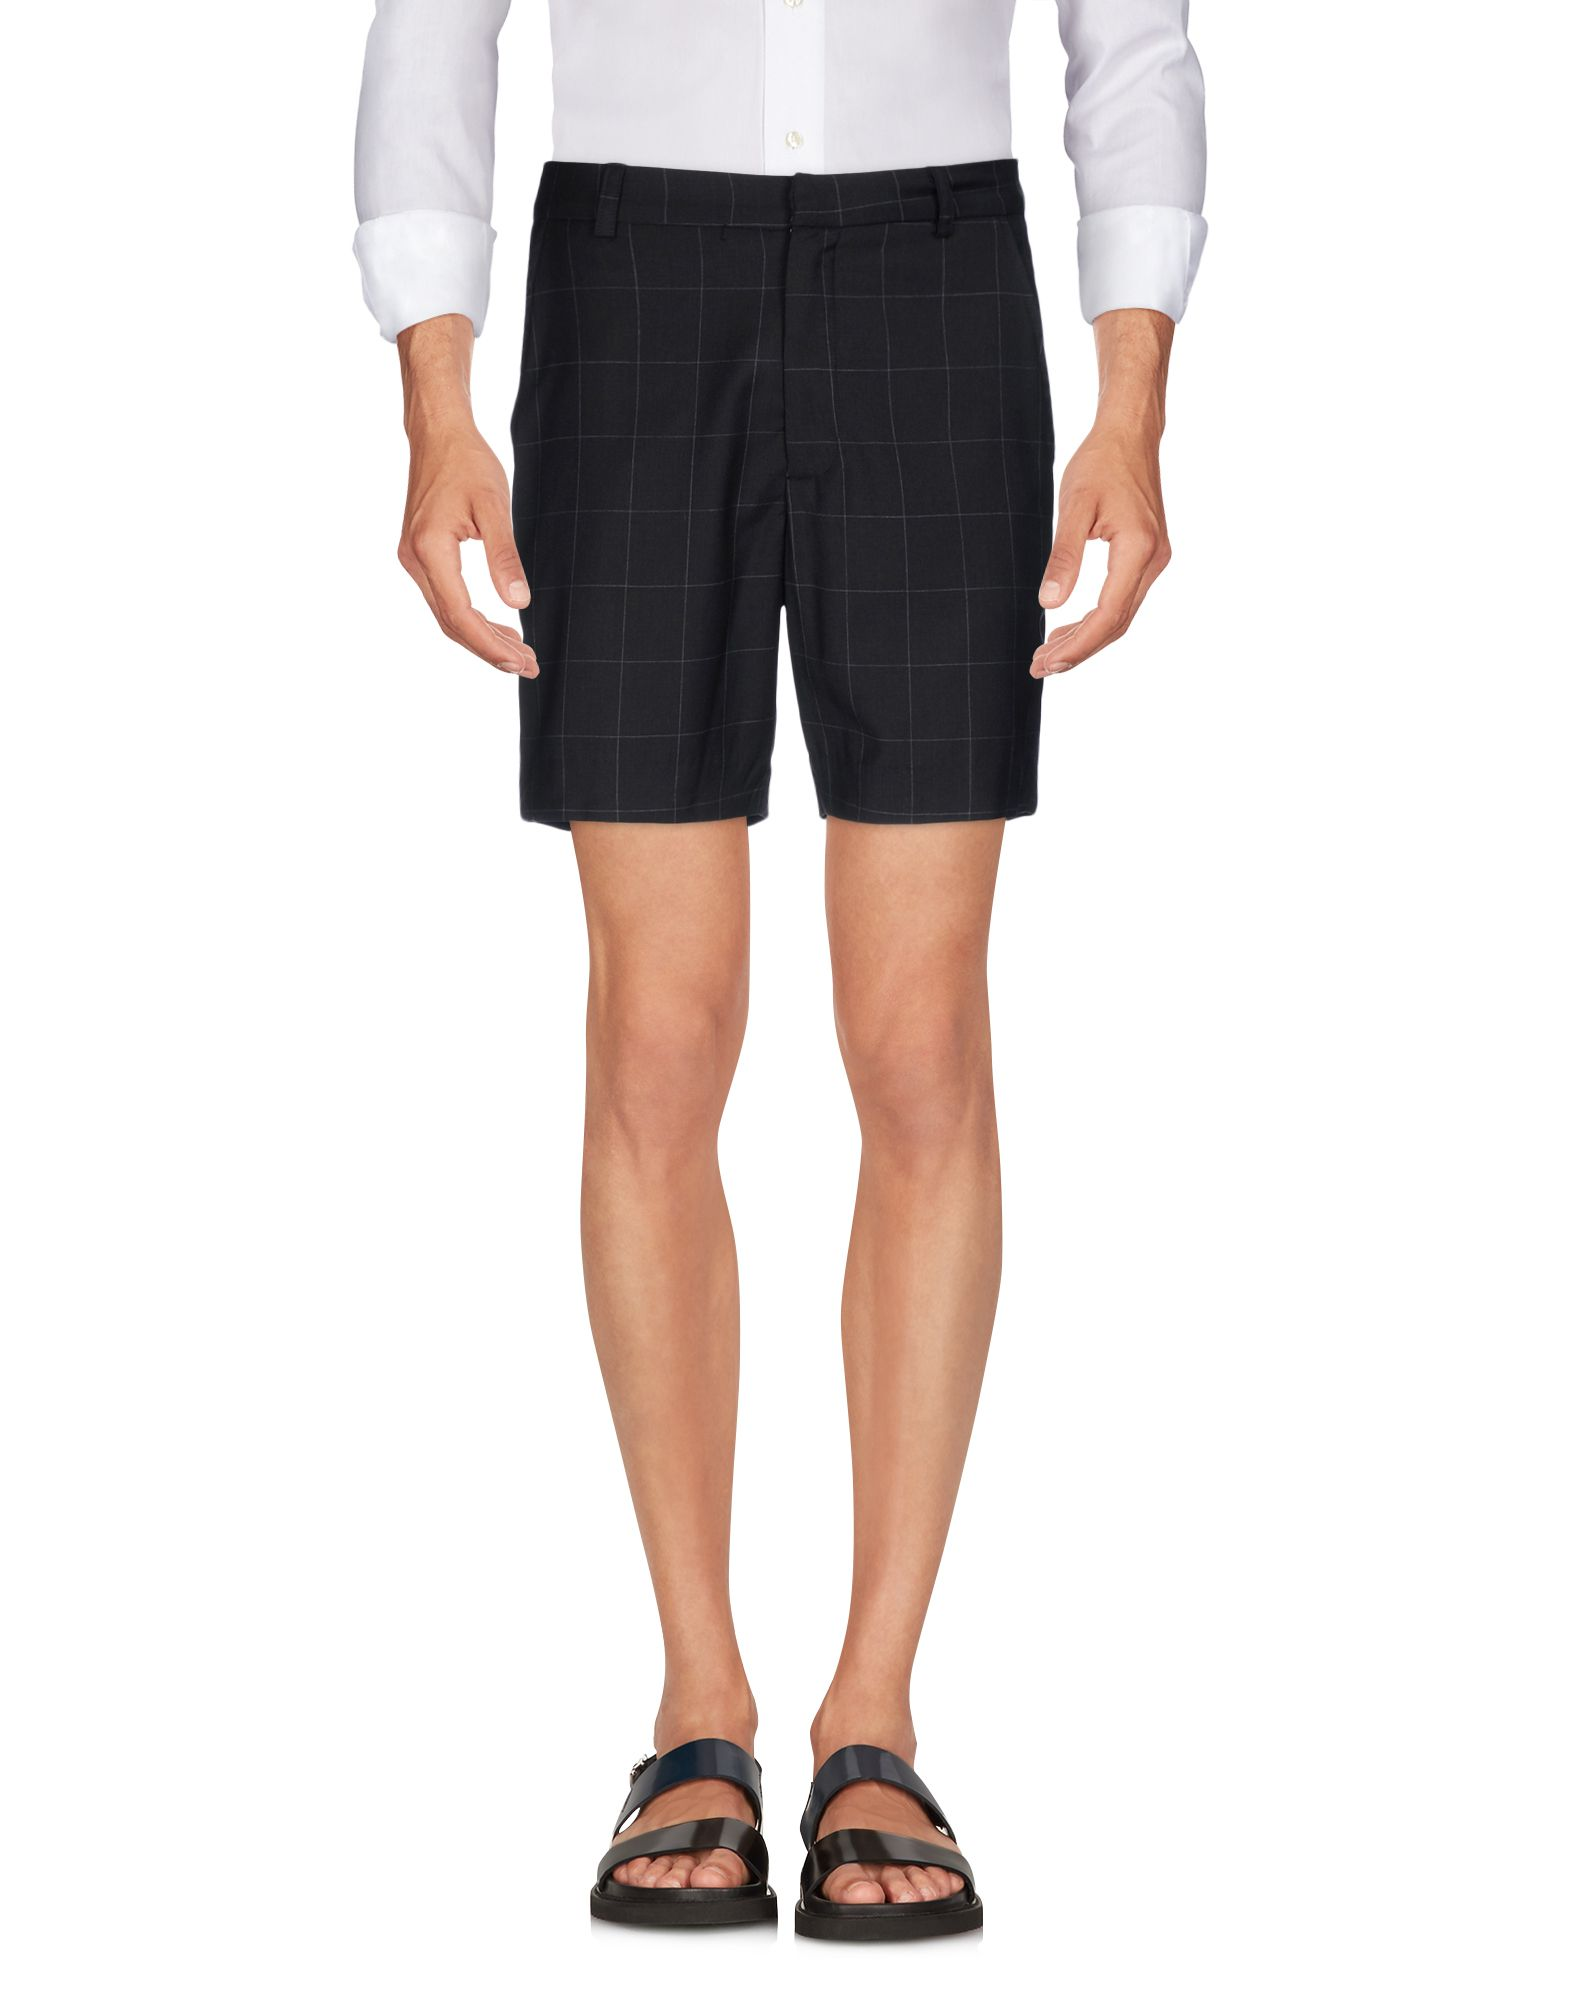 Shorts Band Of Outsiders Uomo - Acquista online su